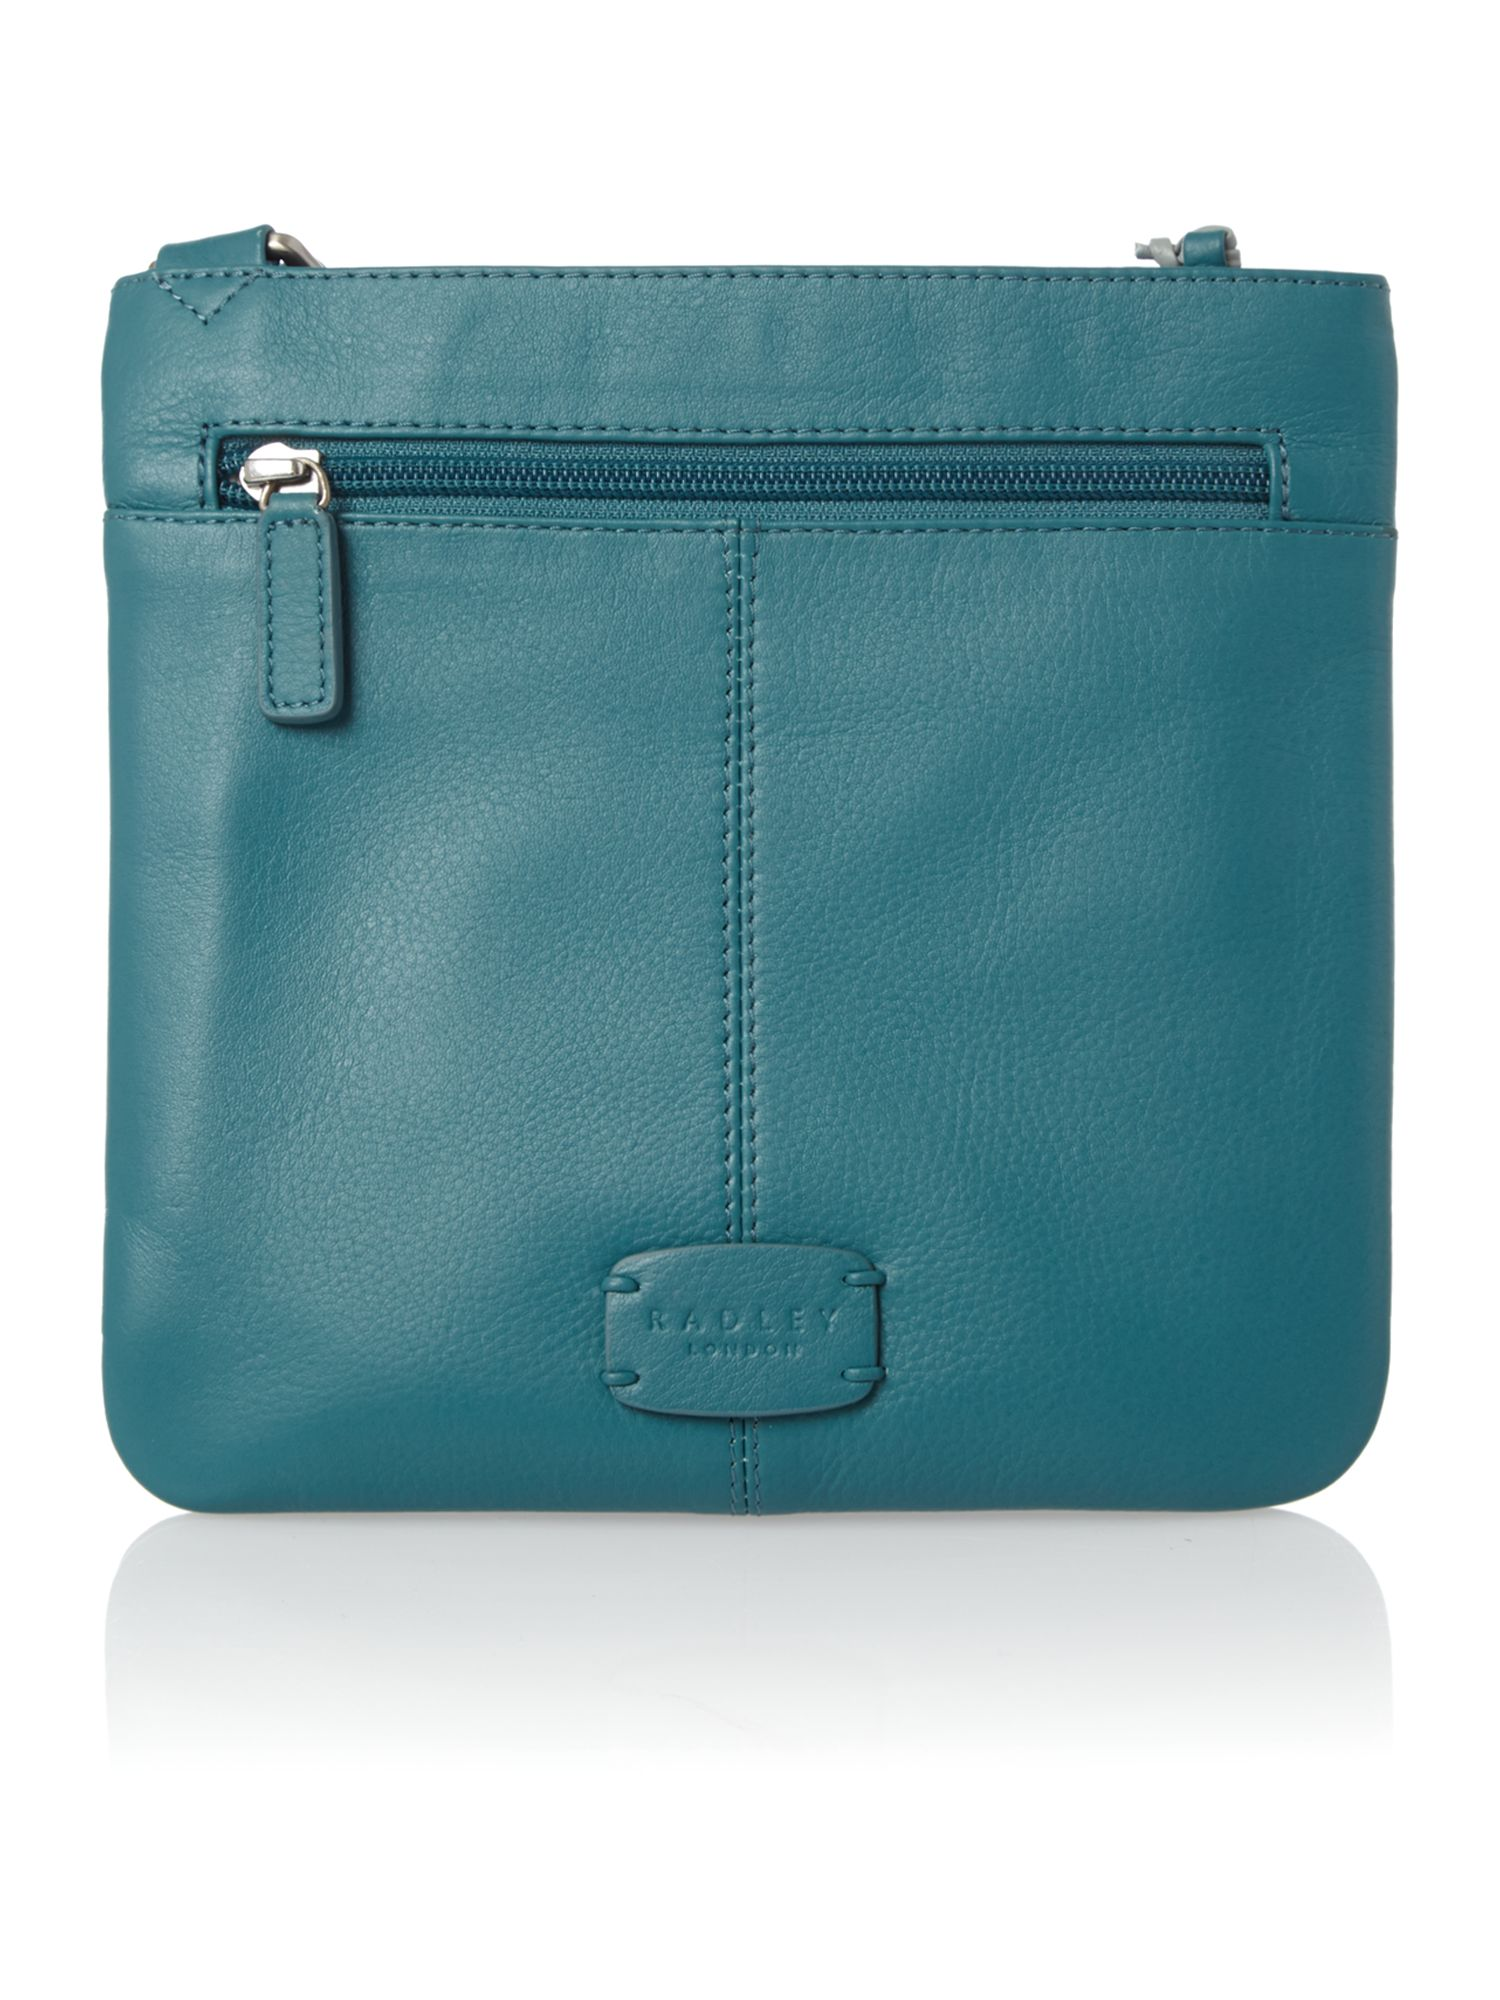 Pocket bag small ziptop xbody leather blue bag